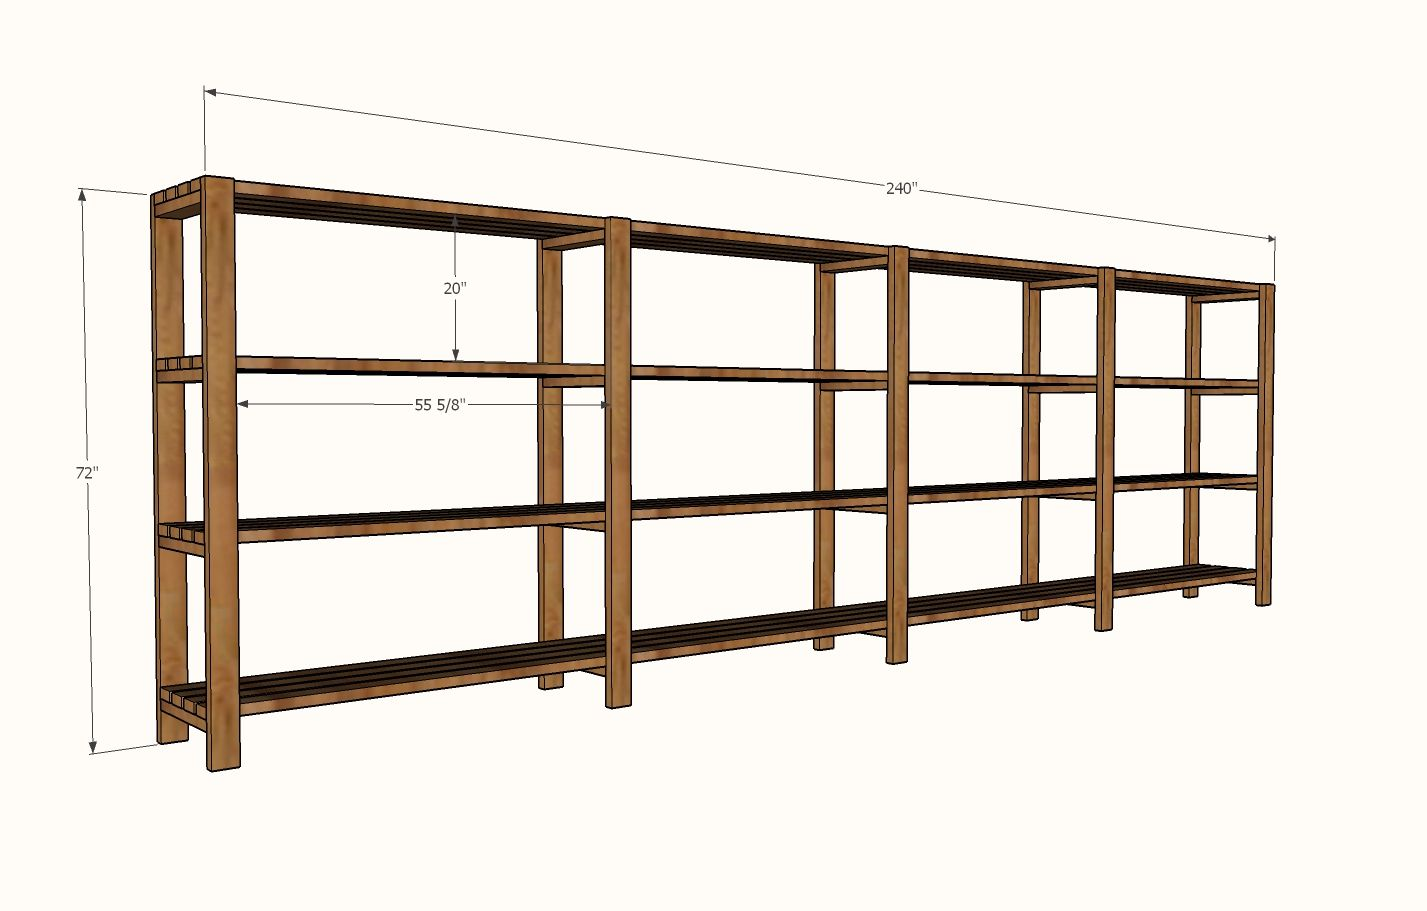 Ana White Build A Easy Economical Garage Shelving From